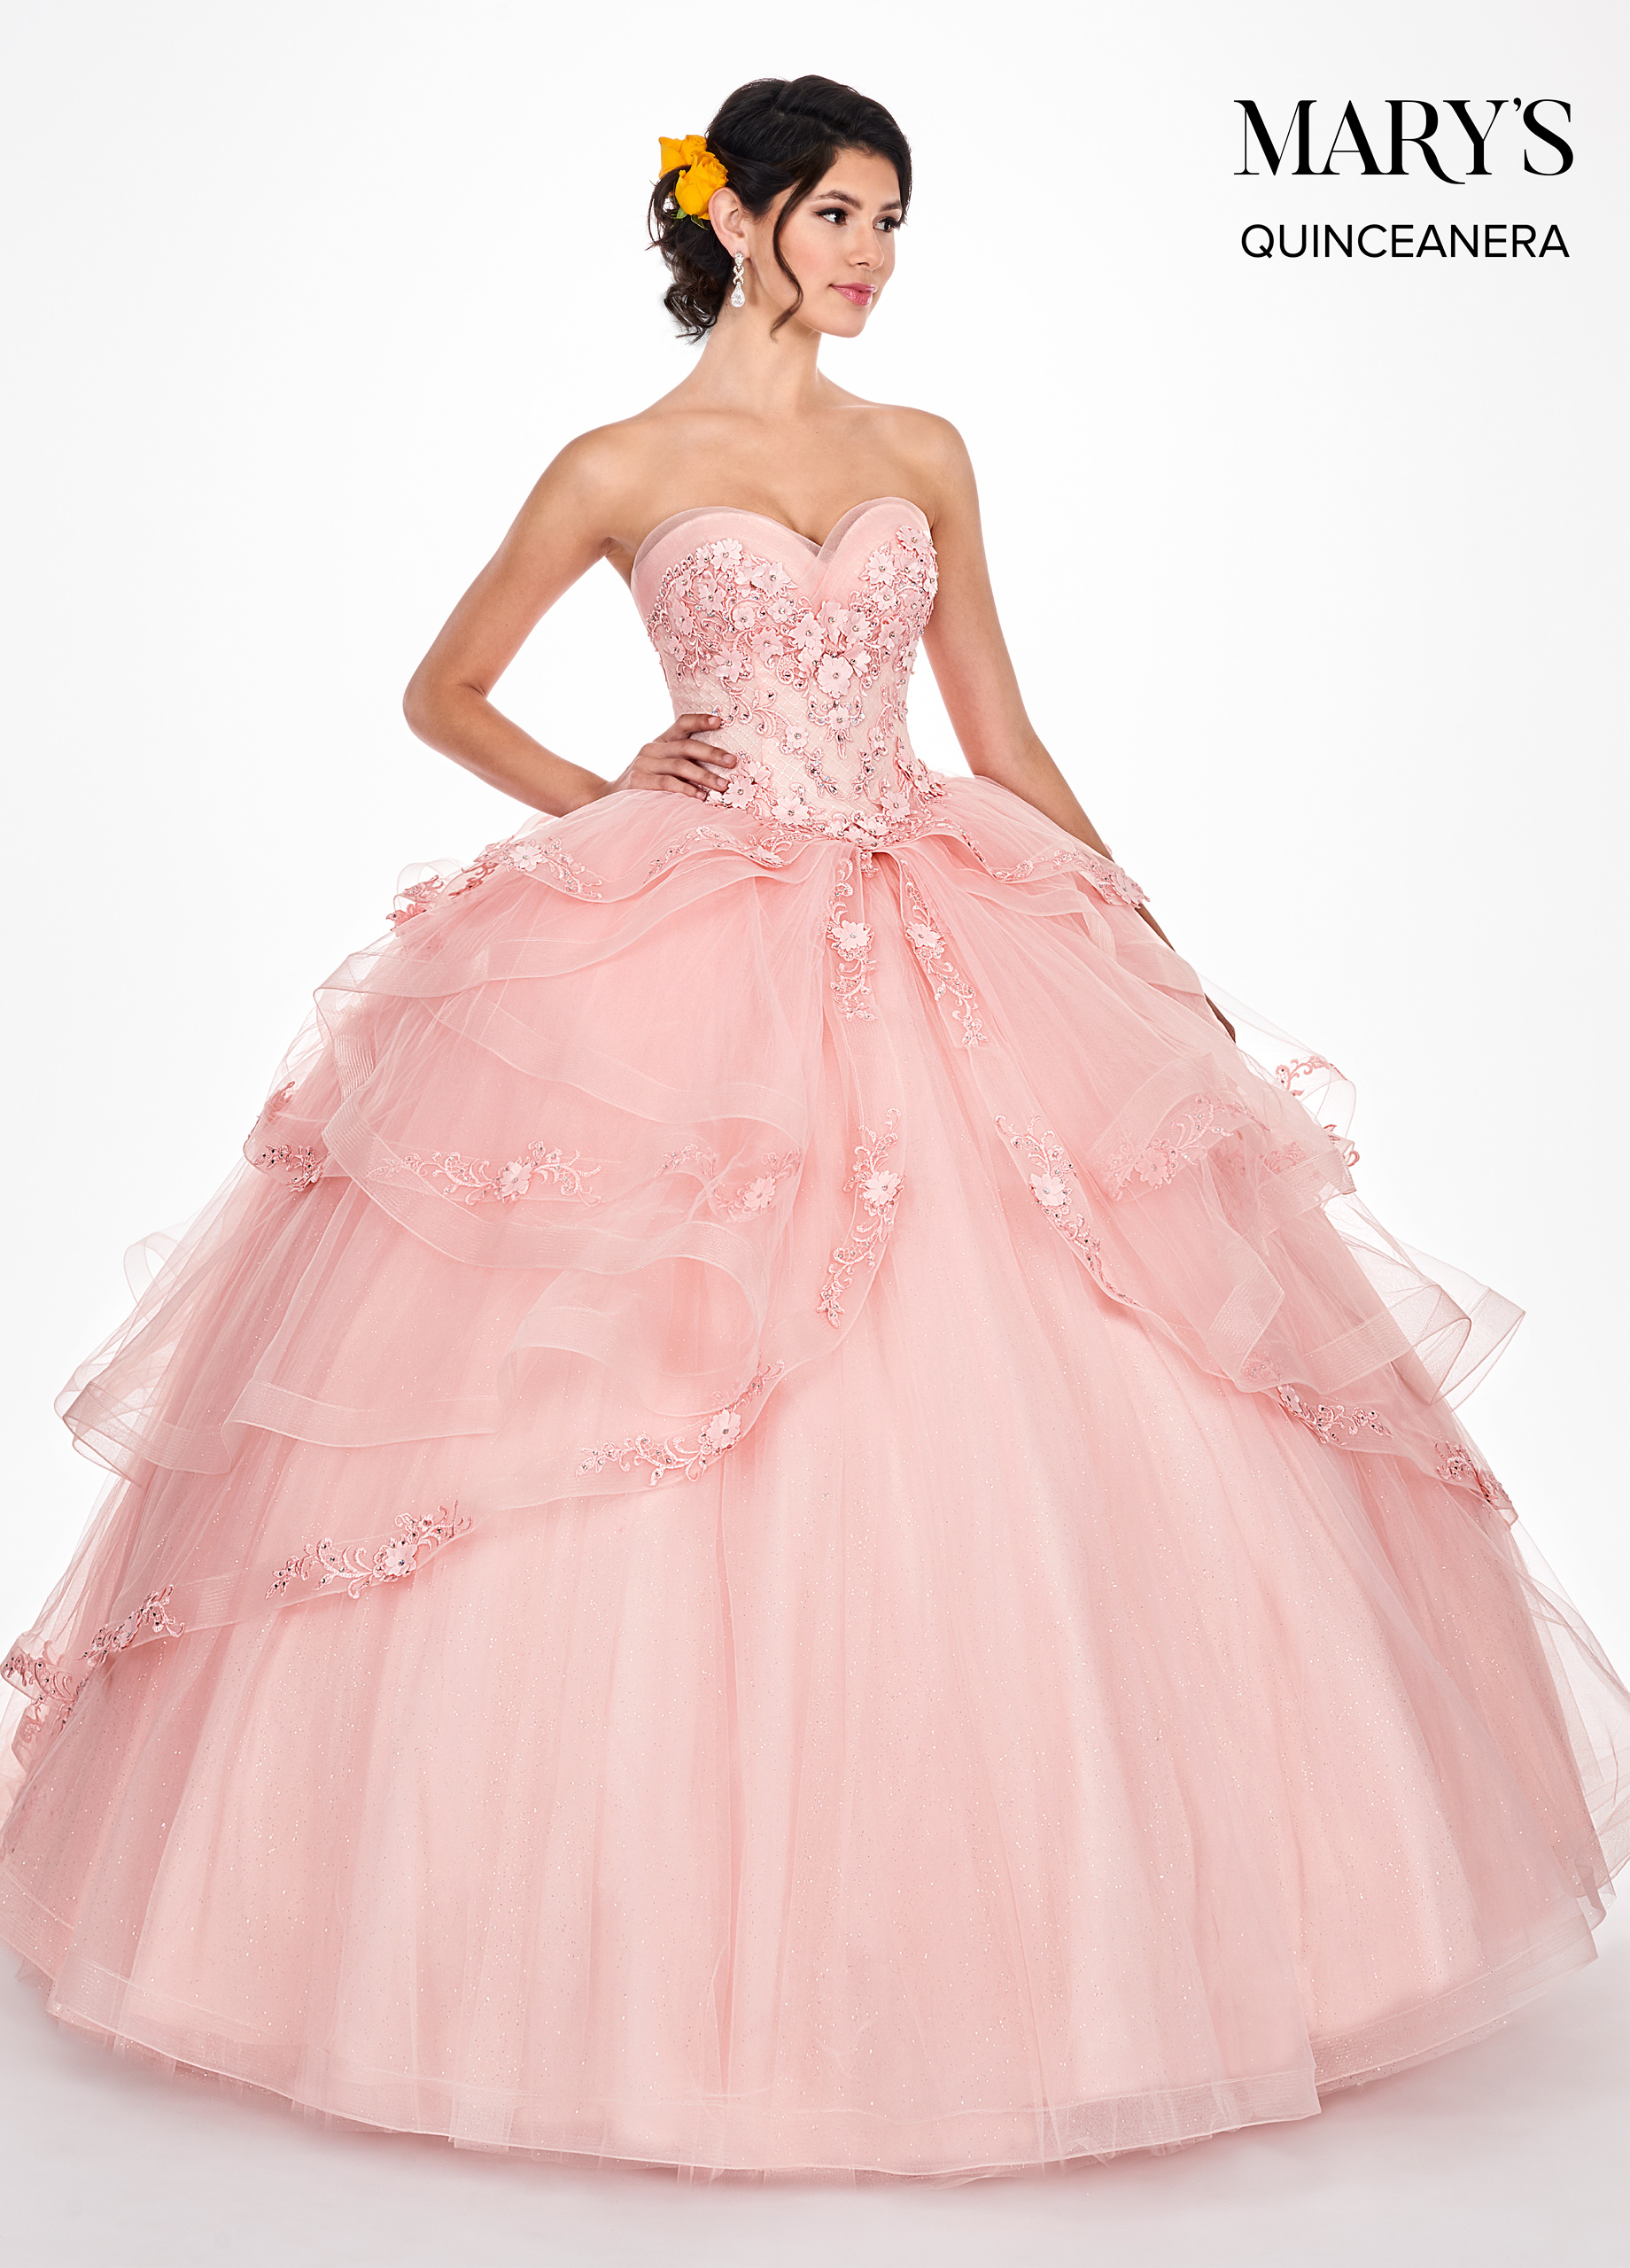 Marys Quinceanera Dresses | Mary's Quinceanera | Style - MQ2046